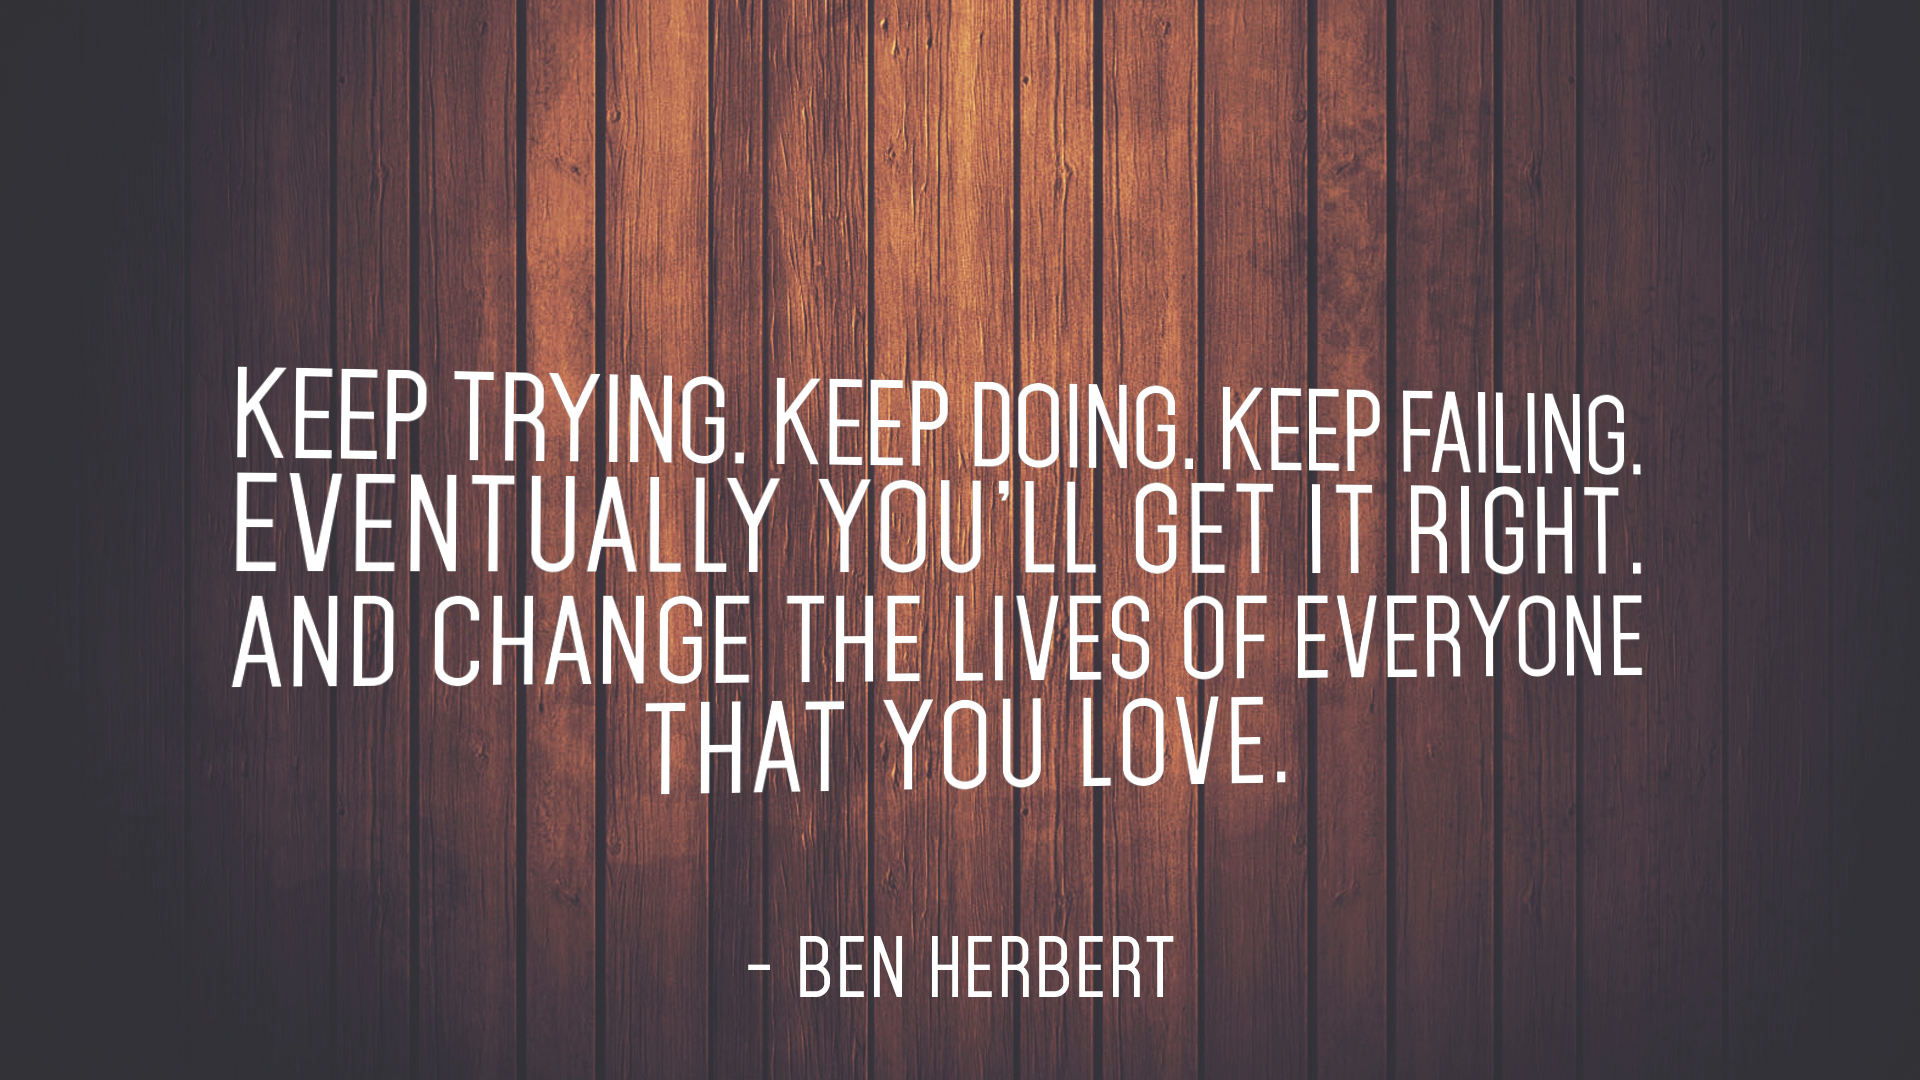 Keep Trying. Keep Doing. Keep Failing. Eventually you'll get it right. And change the lives of everyone that you love. Ben Herbert